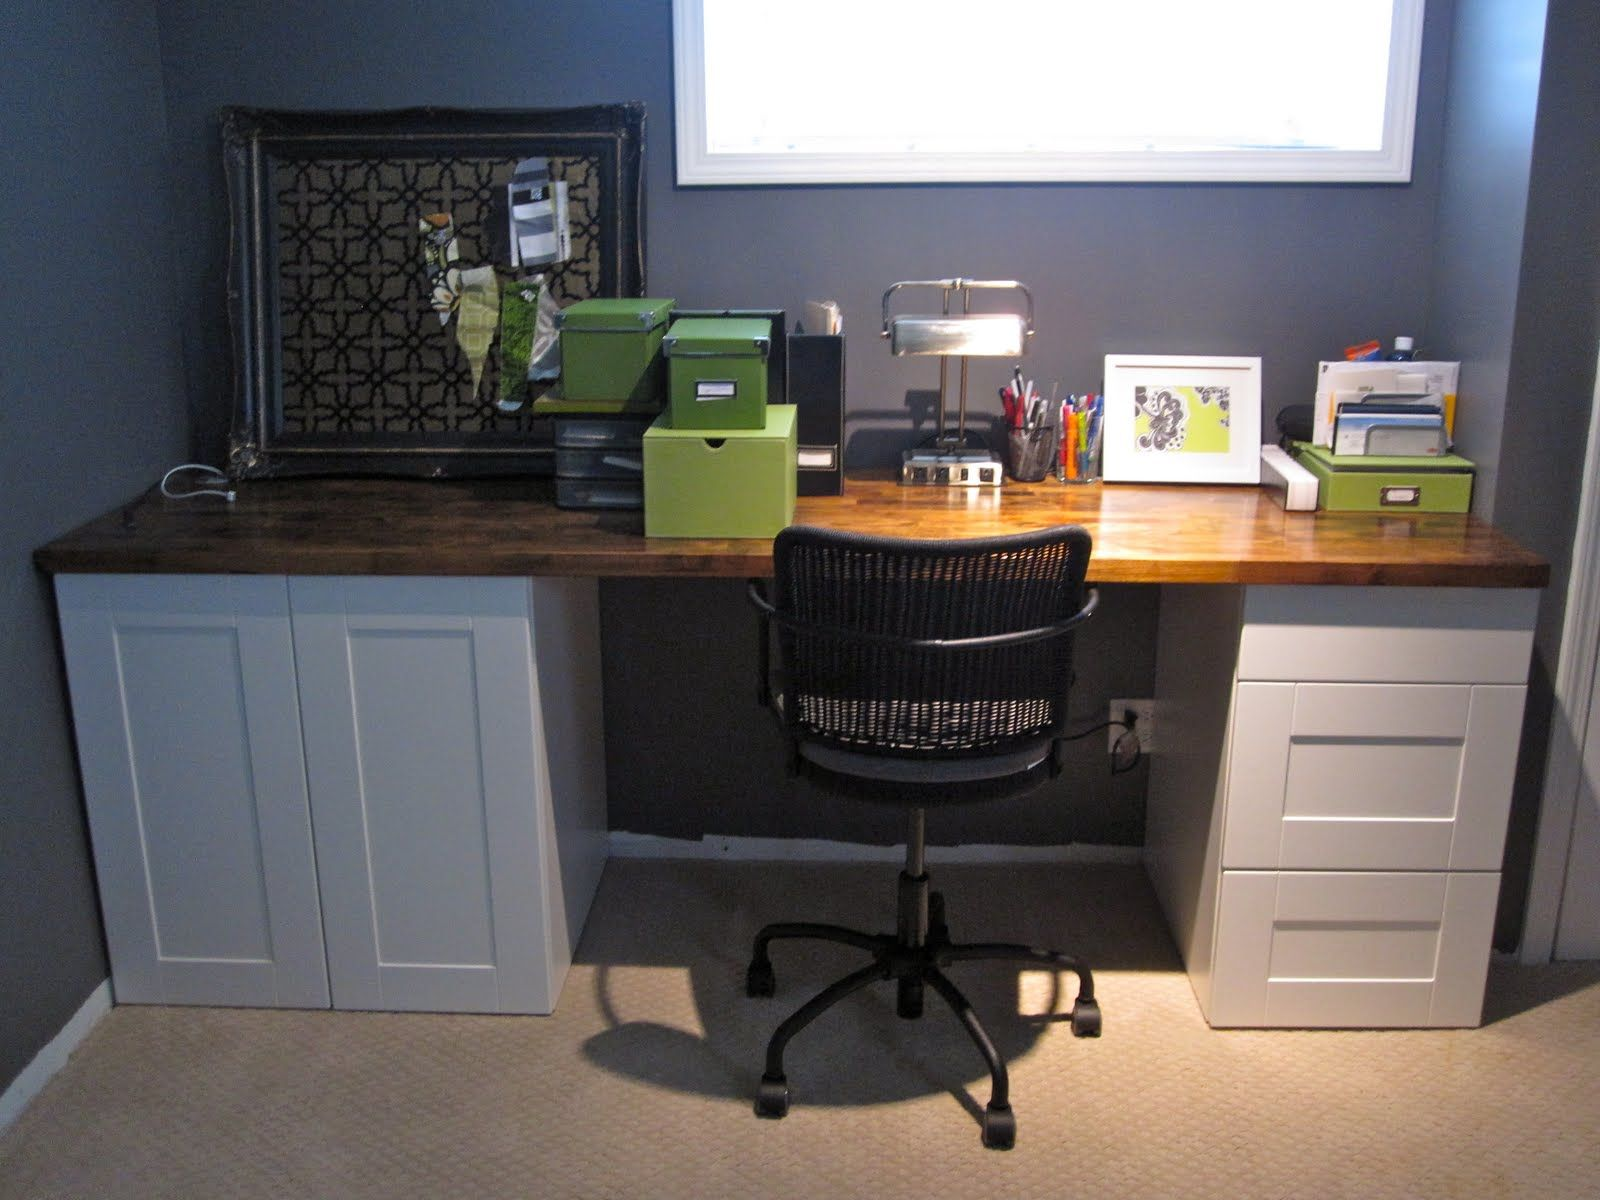 Simple Desk Can Be Made With 2 Reclaimed Cabinets And A Door Built In Desk Ikea Countertop Desk Ikea Kitchen Cabinets